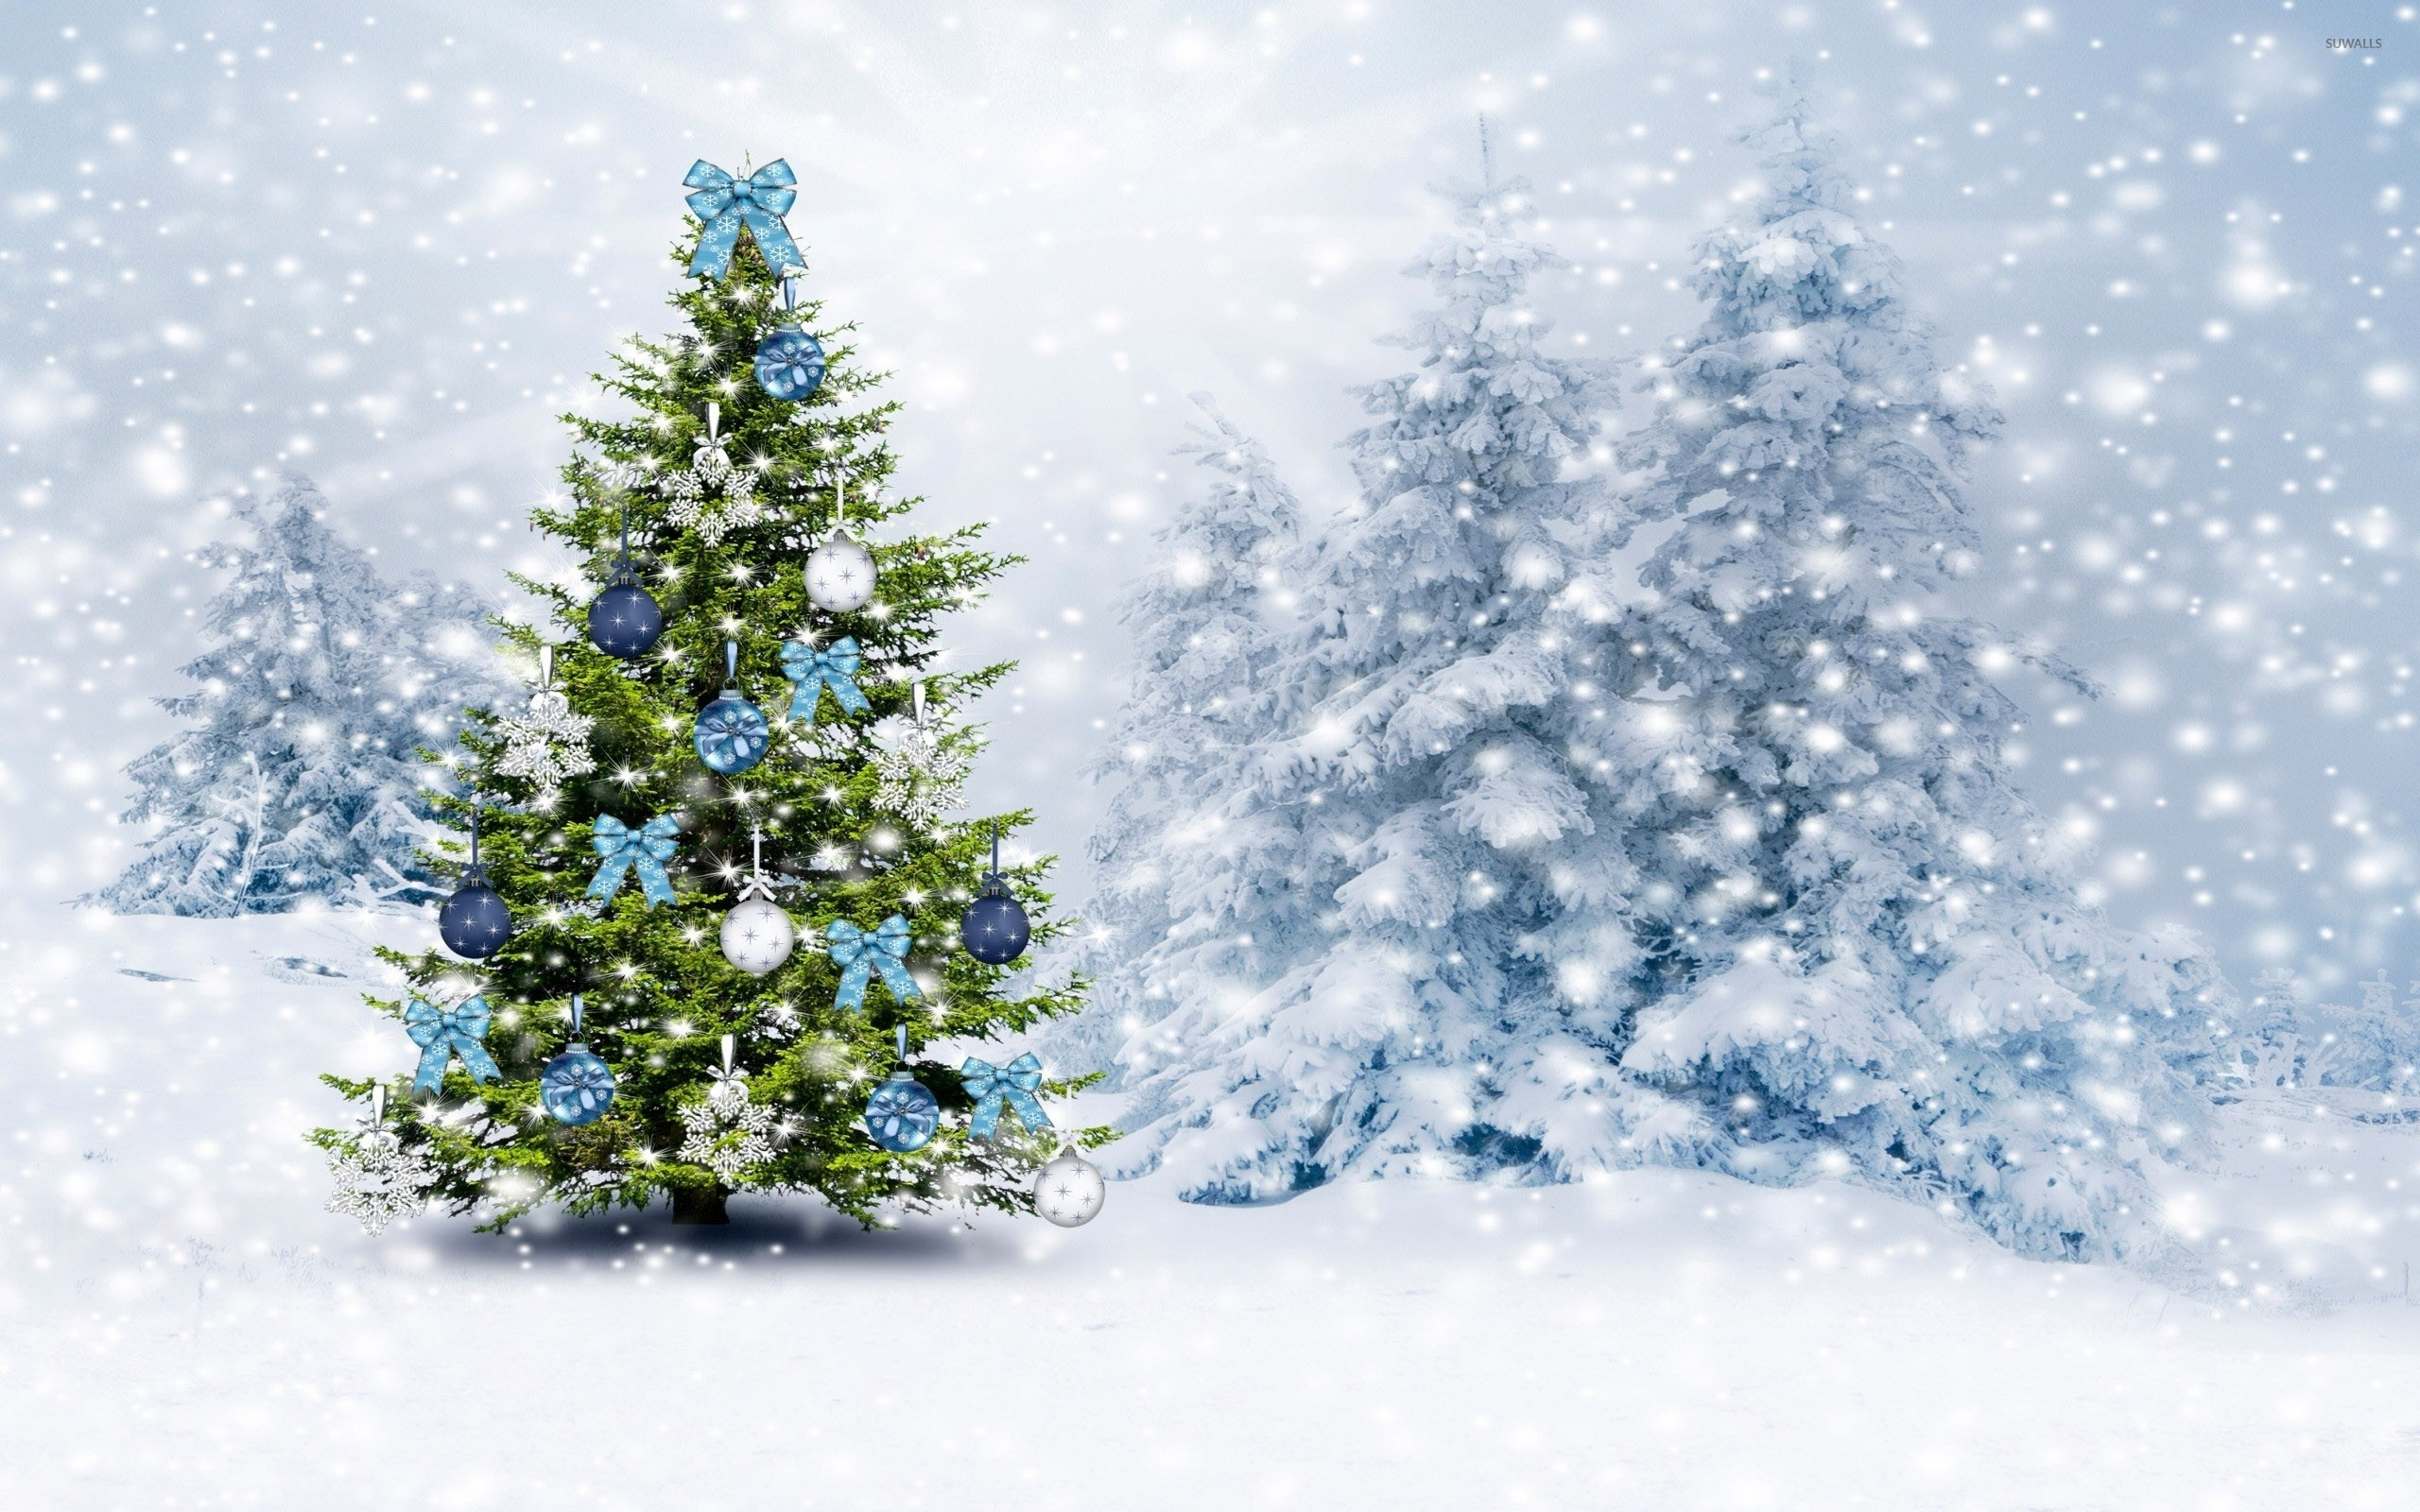 68+ Snowy Christmas Wallpapers on WallpaperPlay